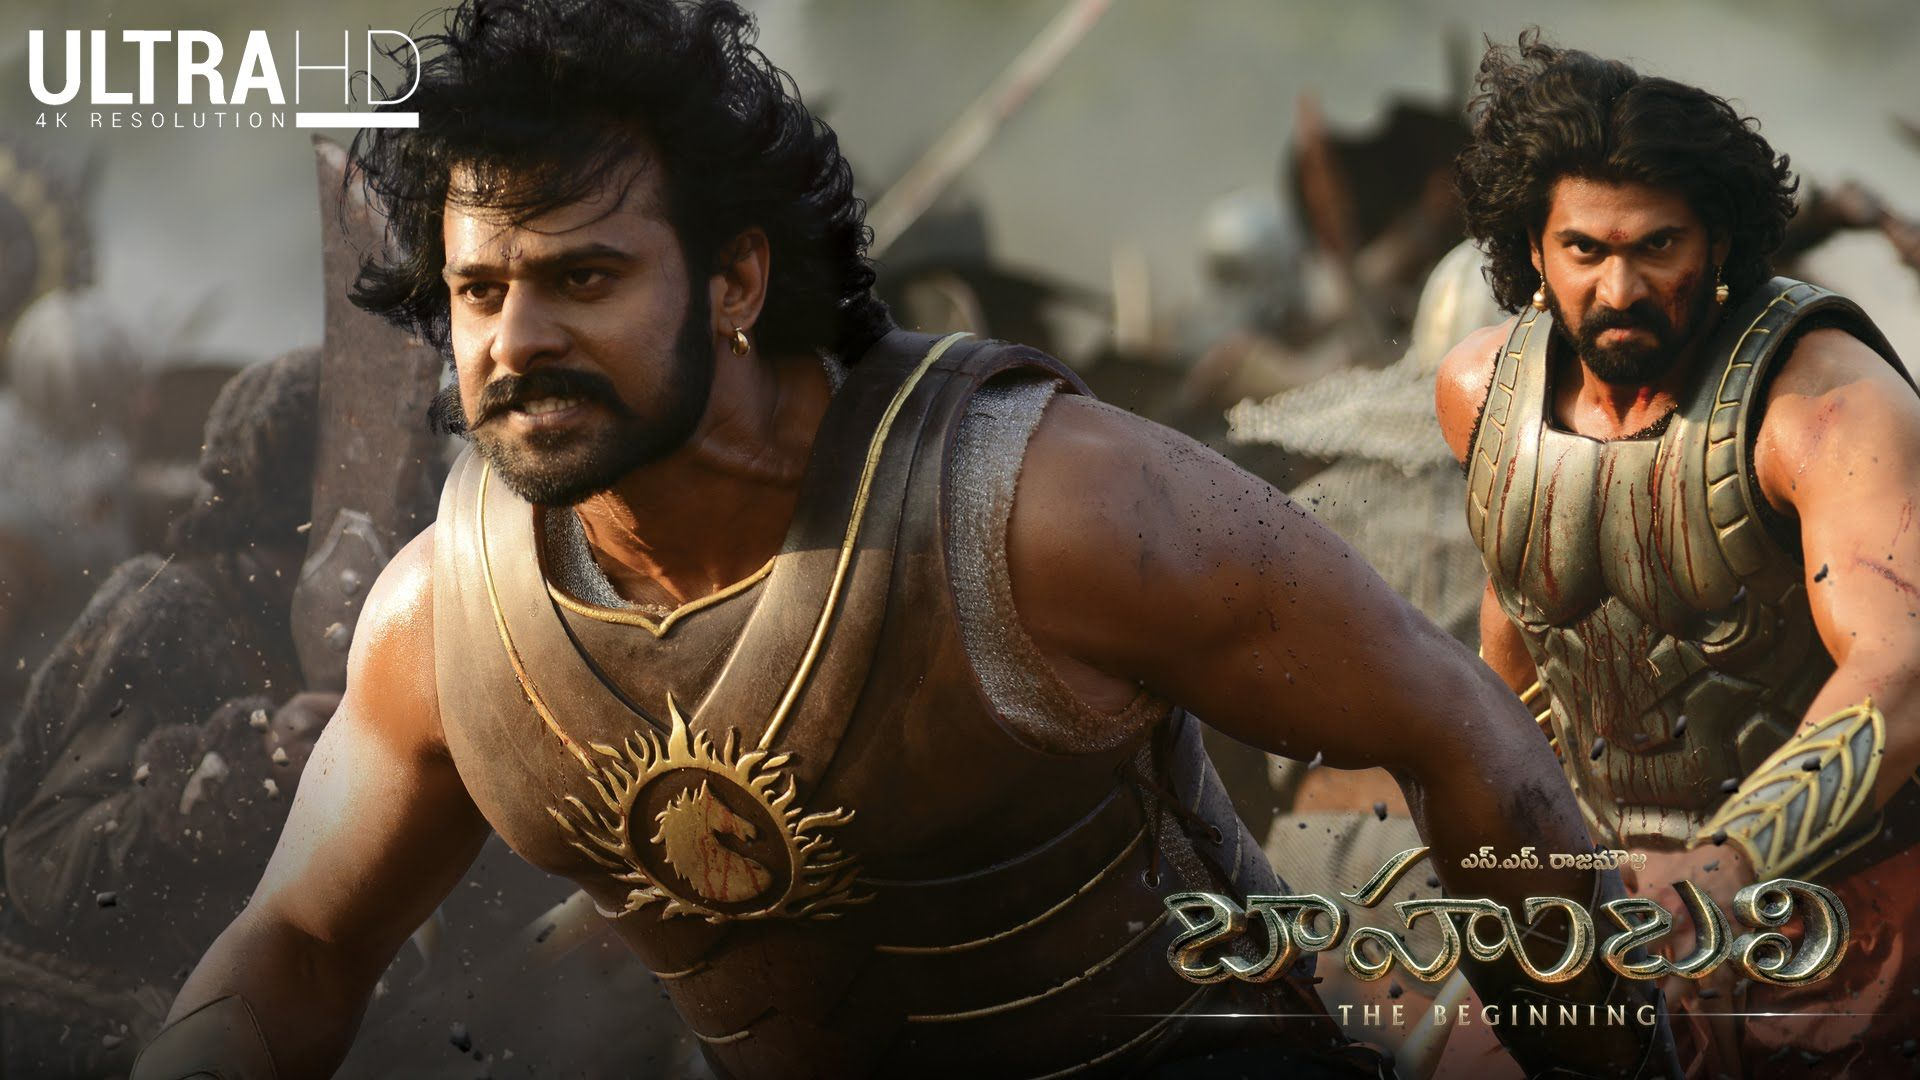 bahubali full movie with english subtitles download